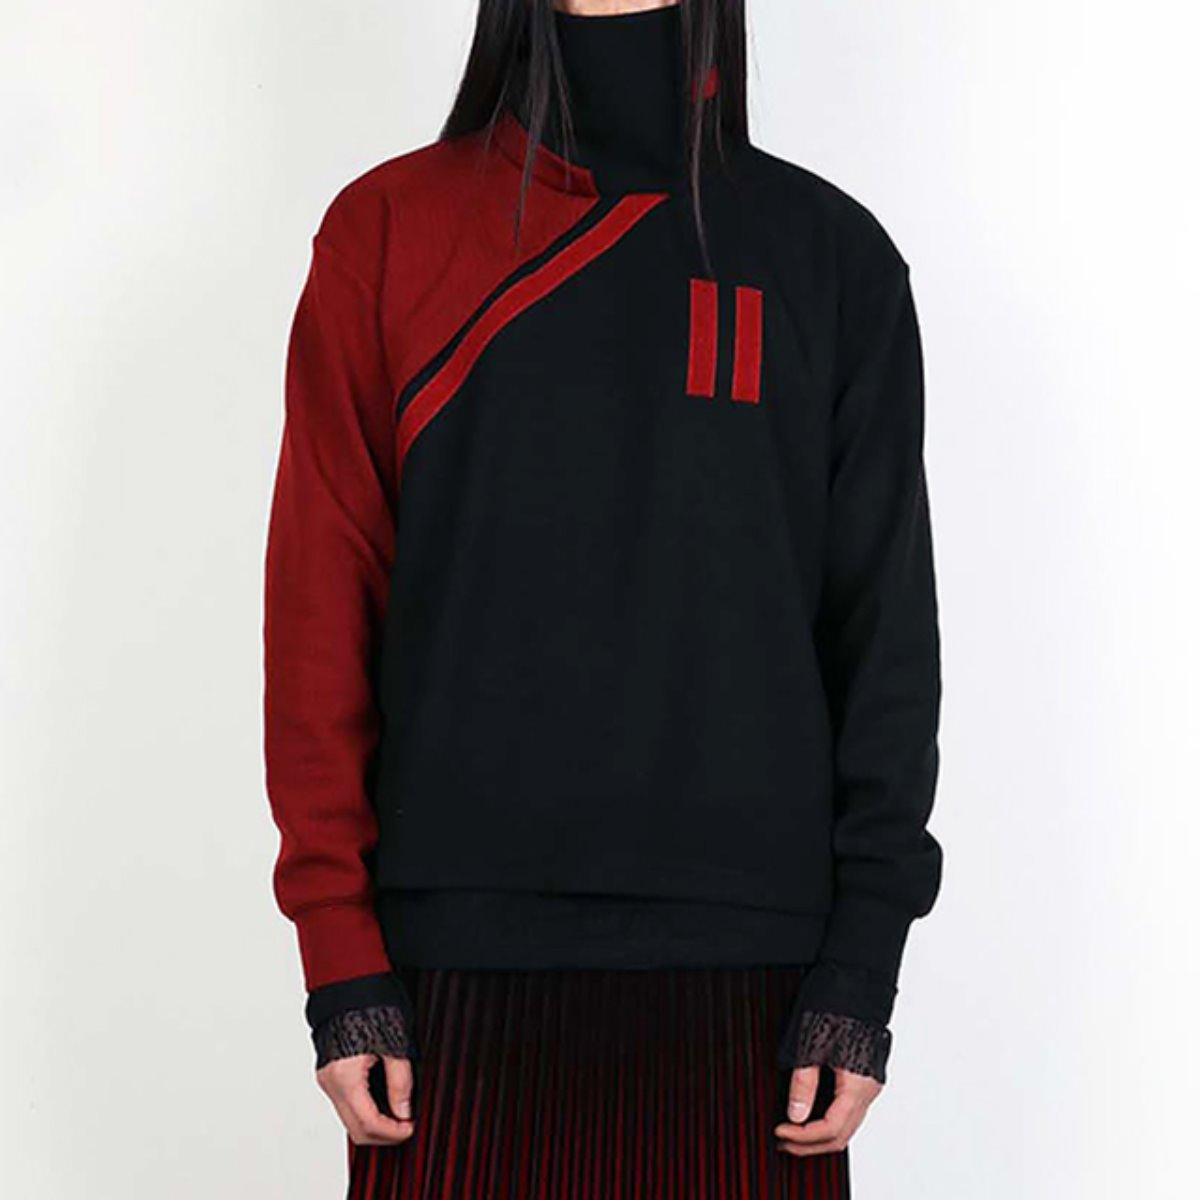 EQUAL VELCRO WOOL KNIT SWEATER (DZFW19_TP03)